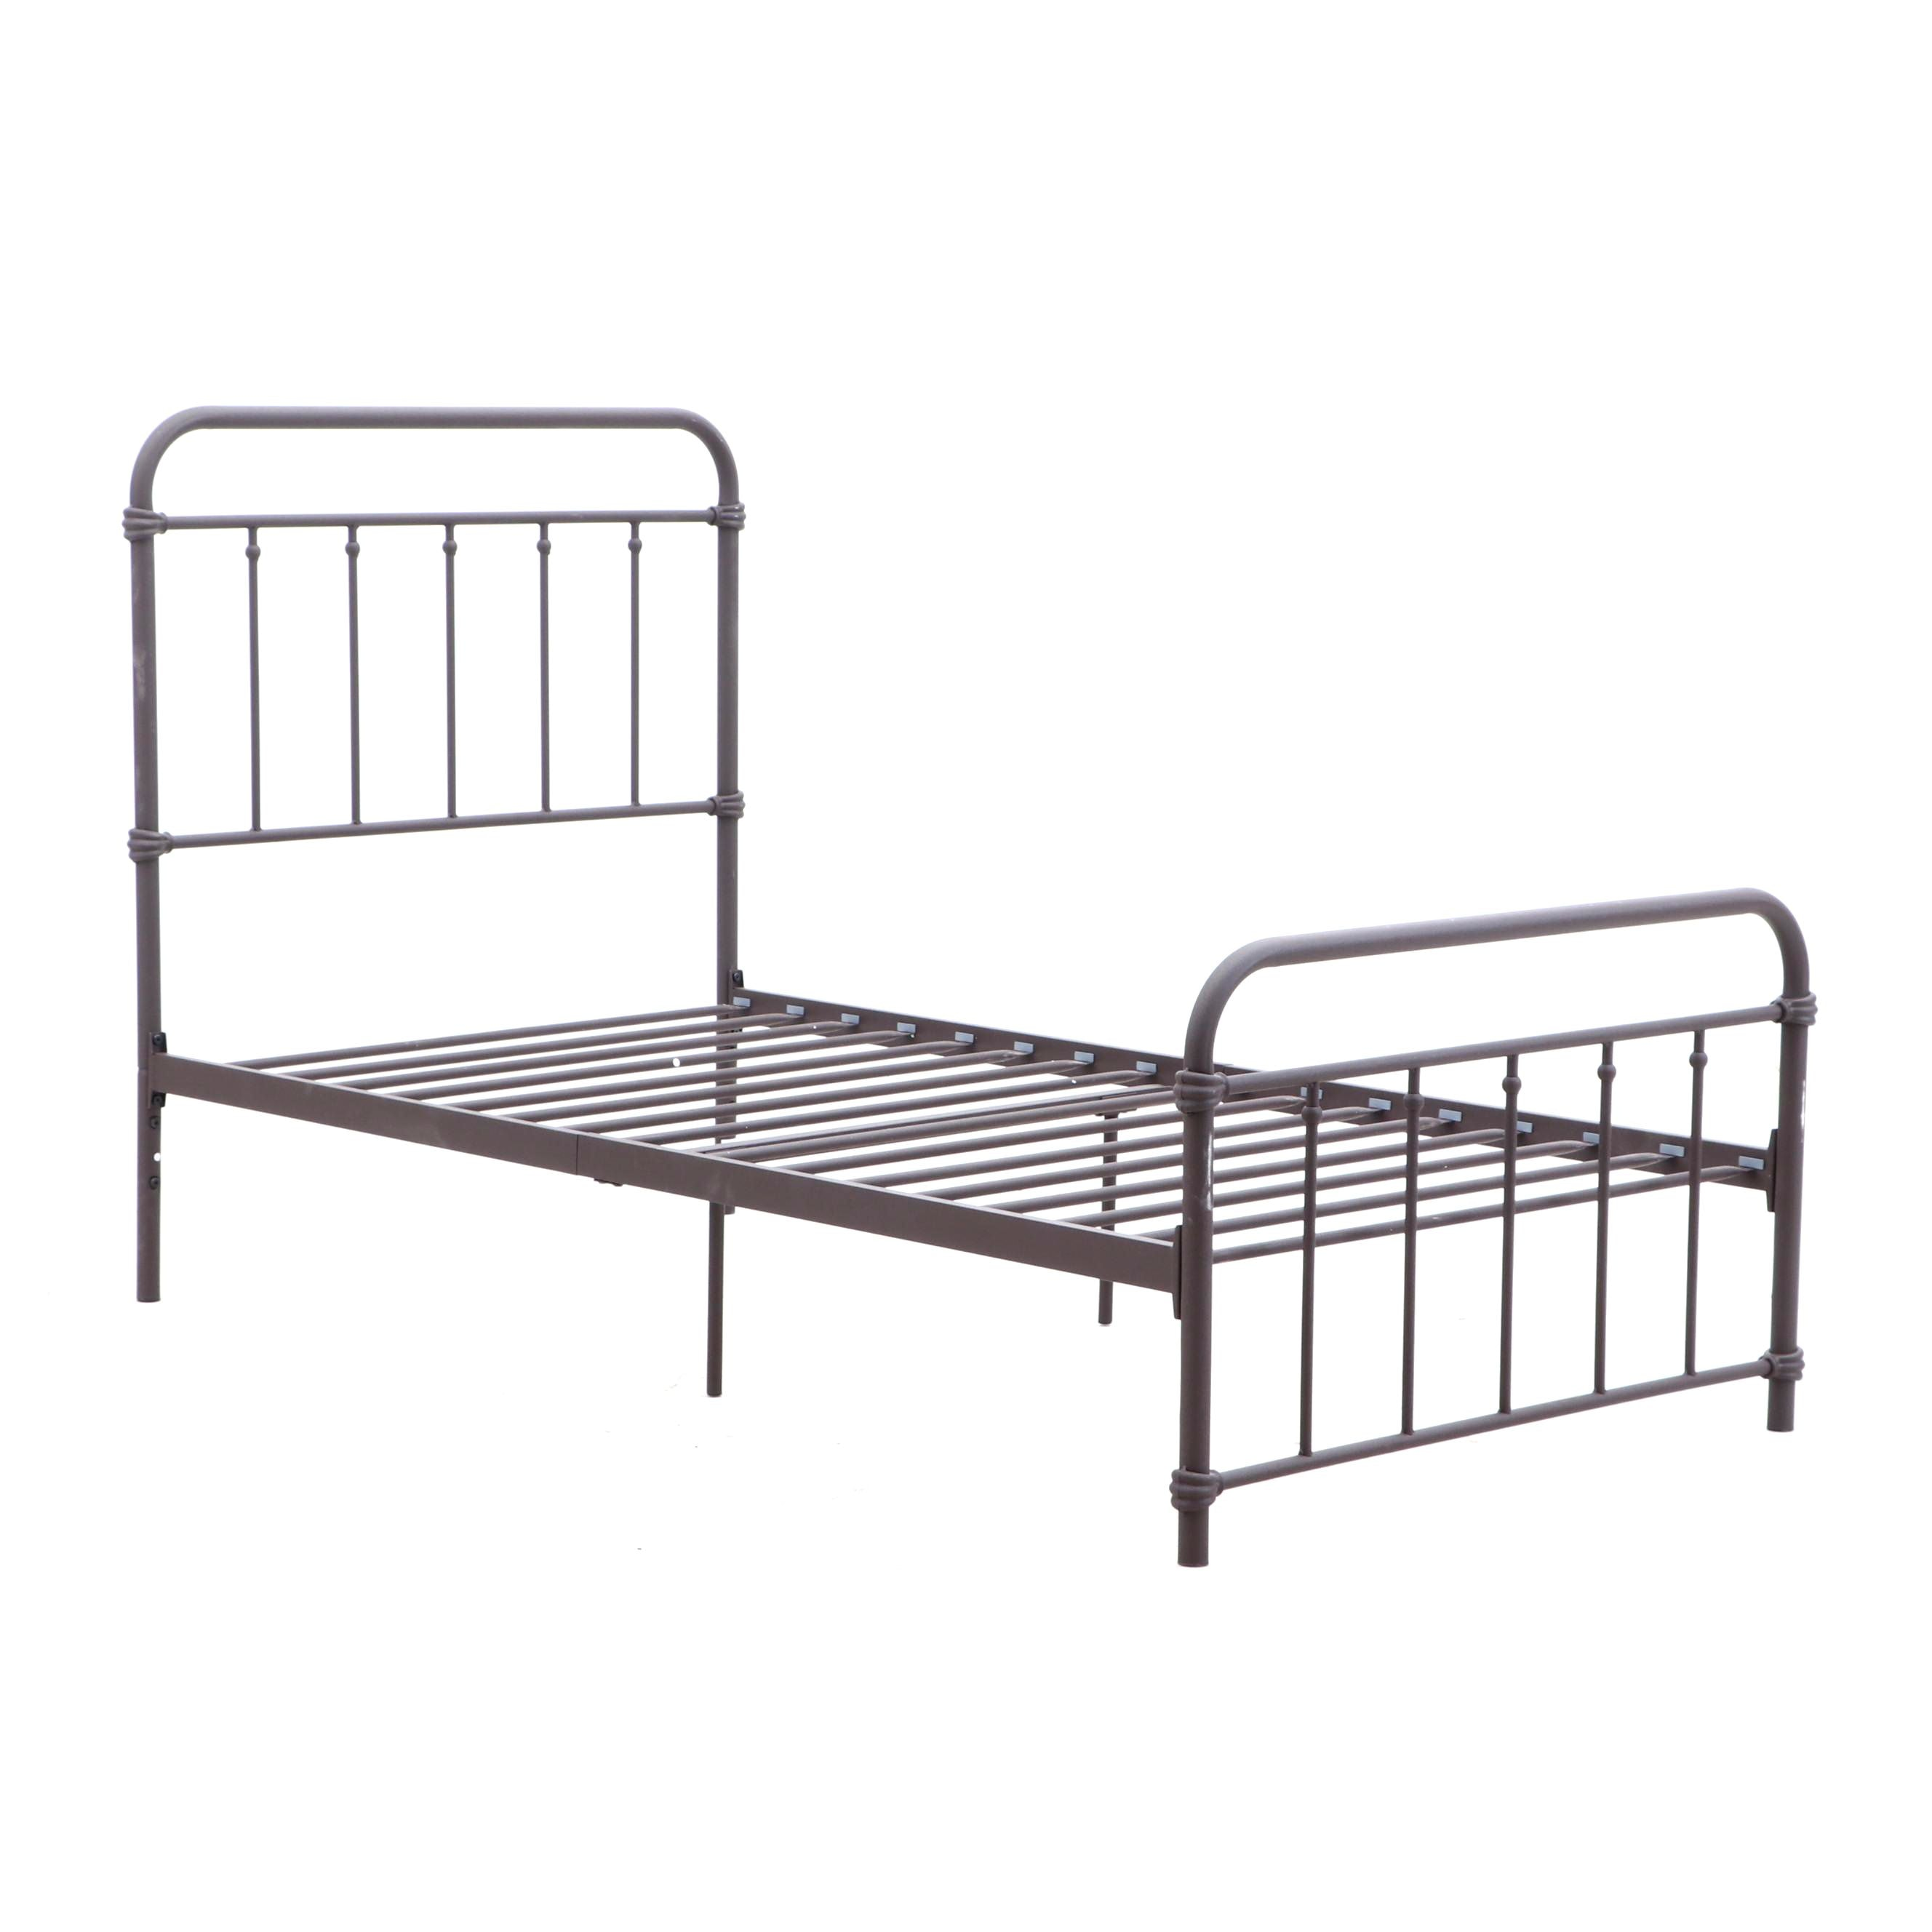 """Contemporary Dorel """"Brooklyn"""" Iron Twin Size Bed Frame in Black"""